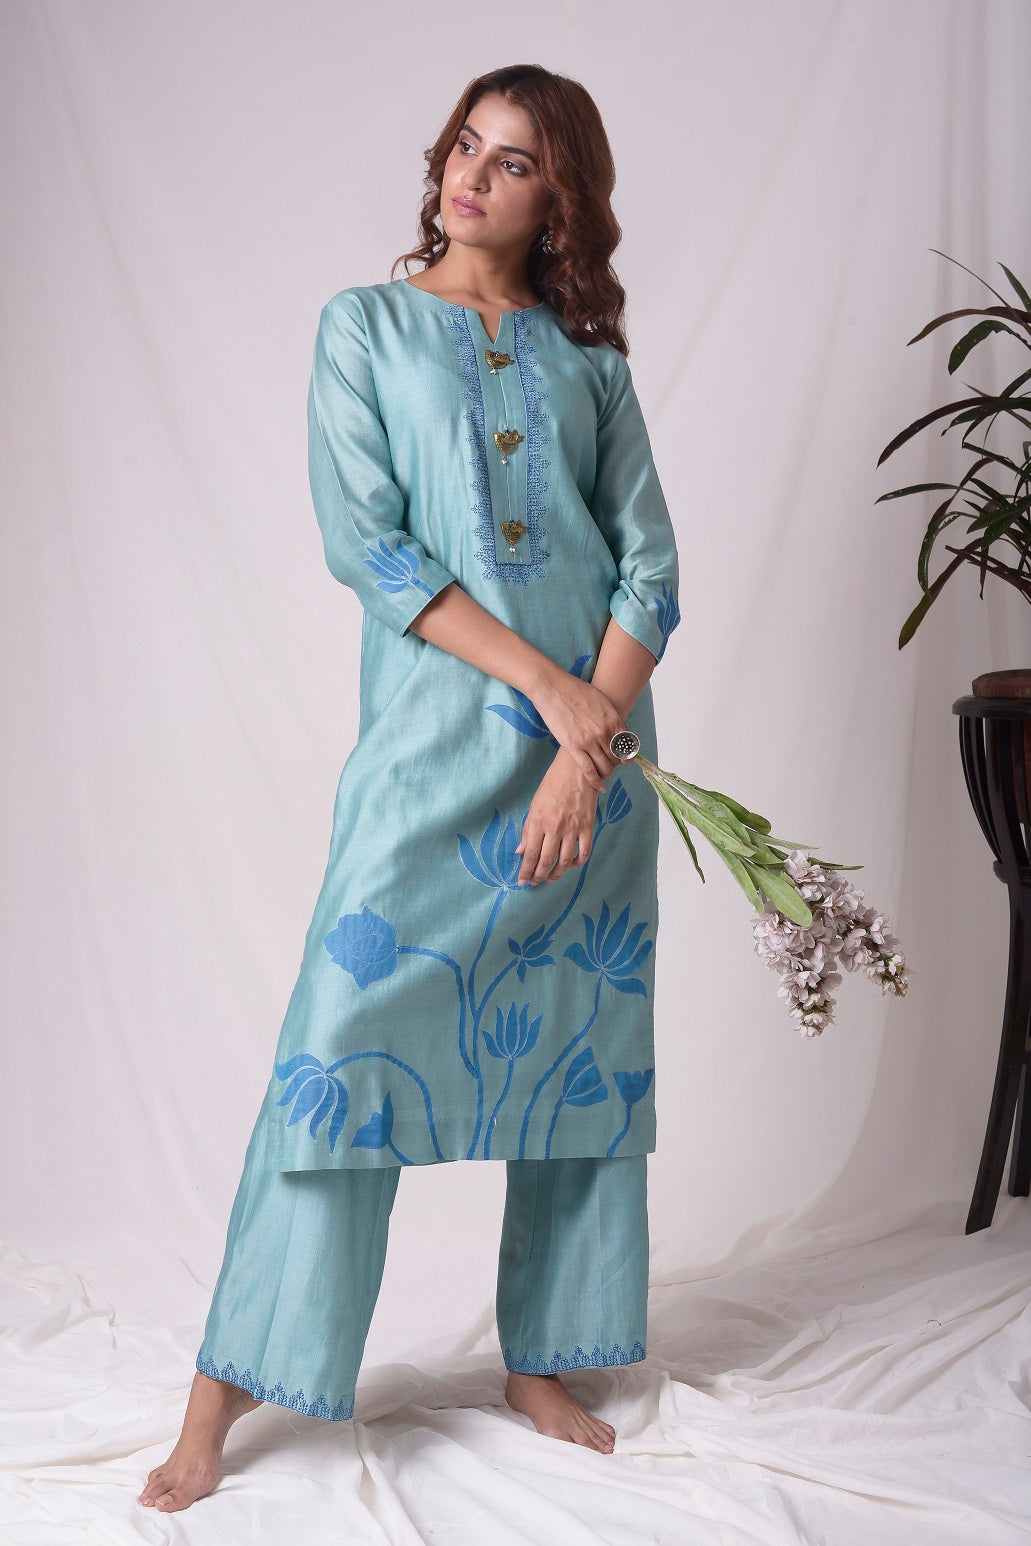 Buy aqua blue chanderi suit online in USA. Be the talk of parties and weddings with exquisite designer gowns, sharara suits, Anarkali suits, salwar suits from Pure Elegance Indian clothing store in USA. Shop online now.-full view-4